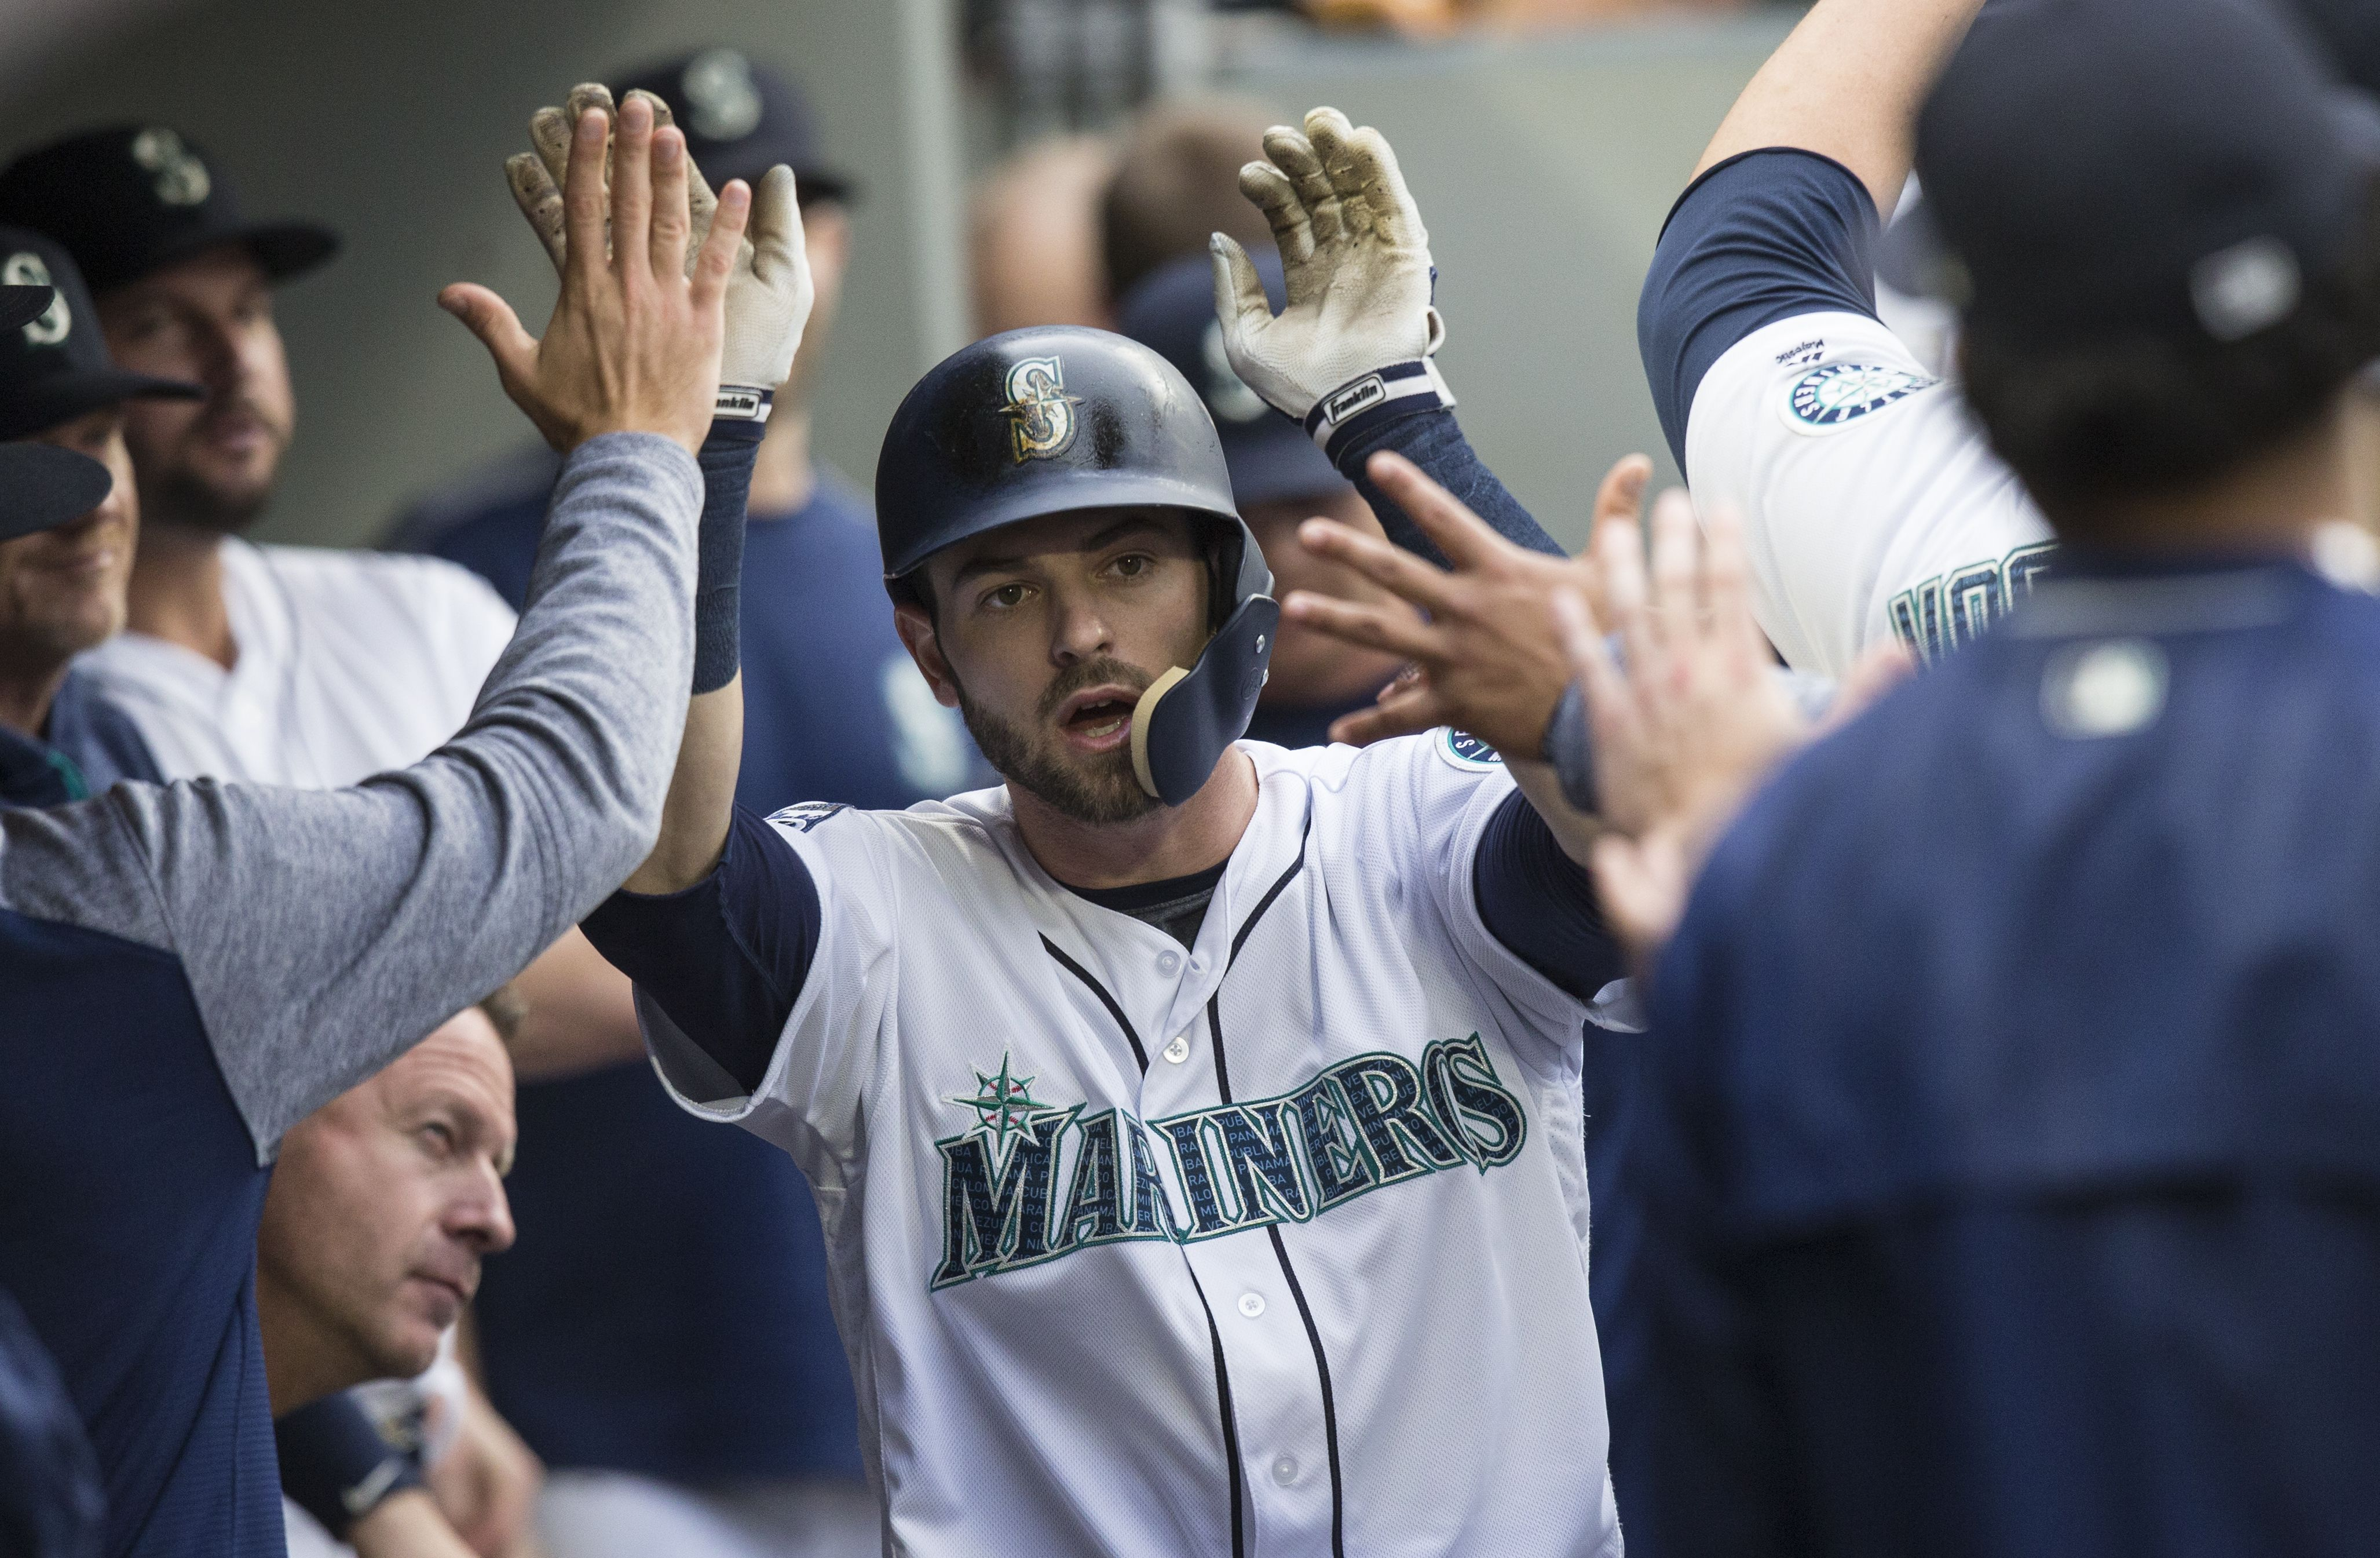 Mariners: Mitch Haniger hitting well, waiver wire add